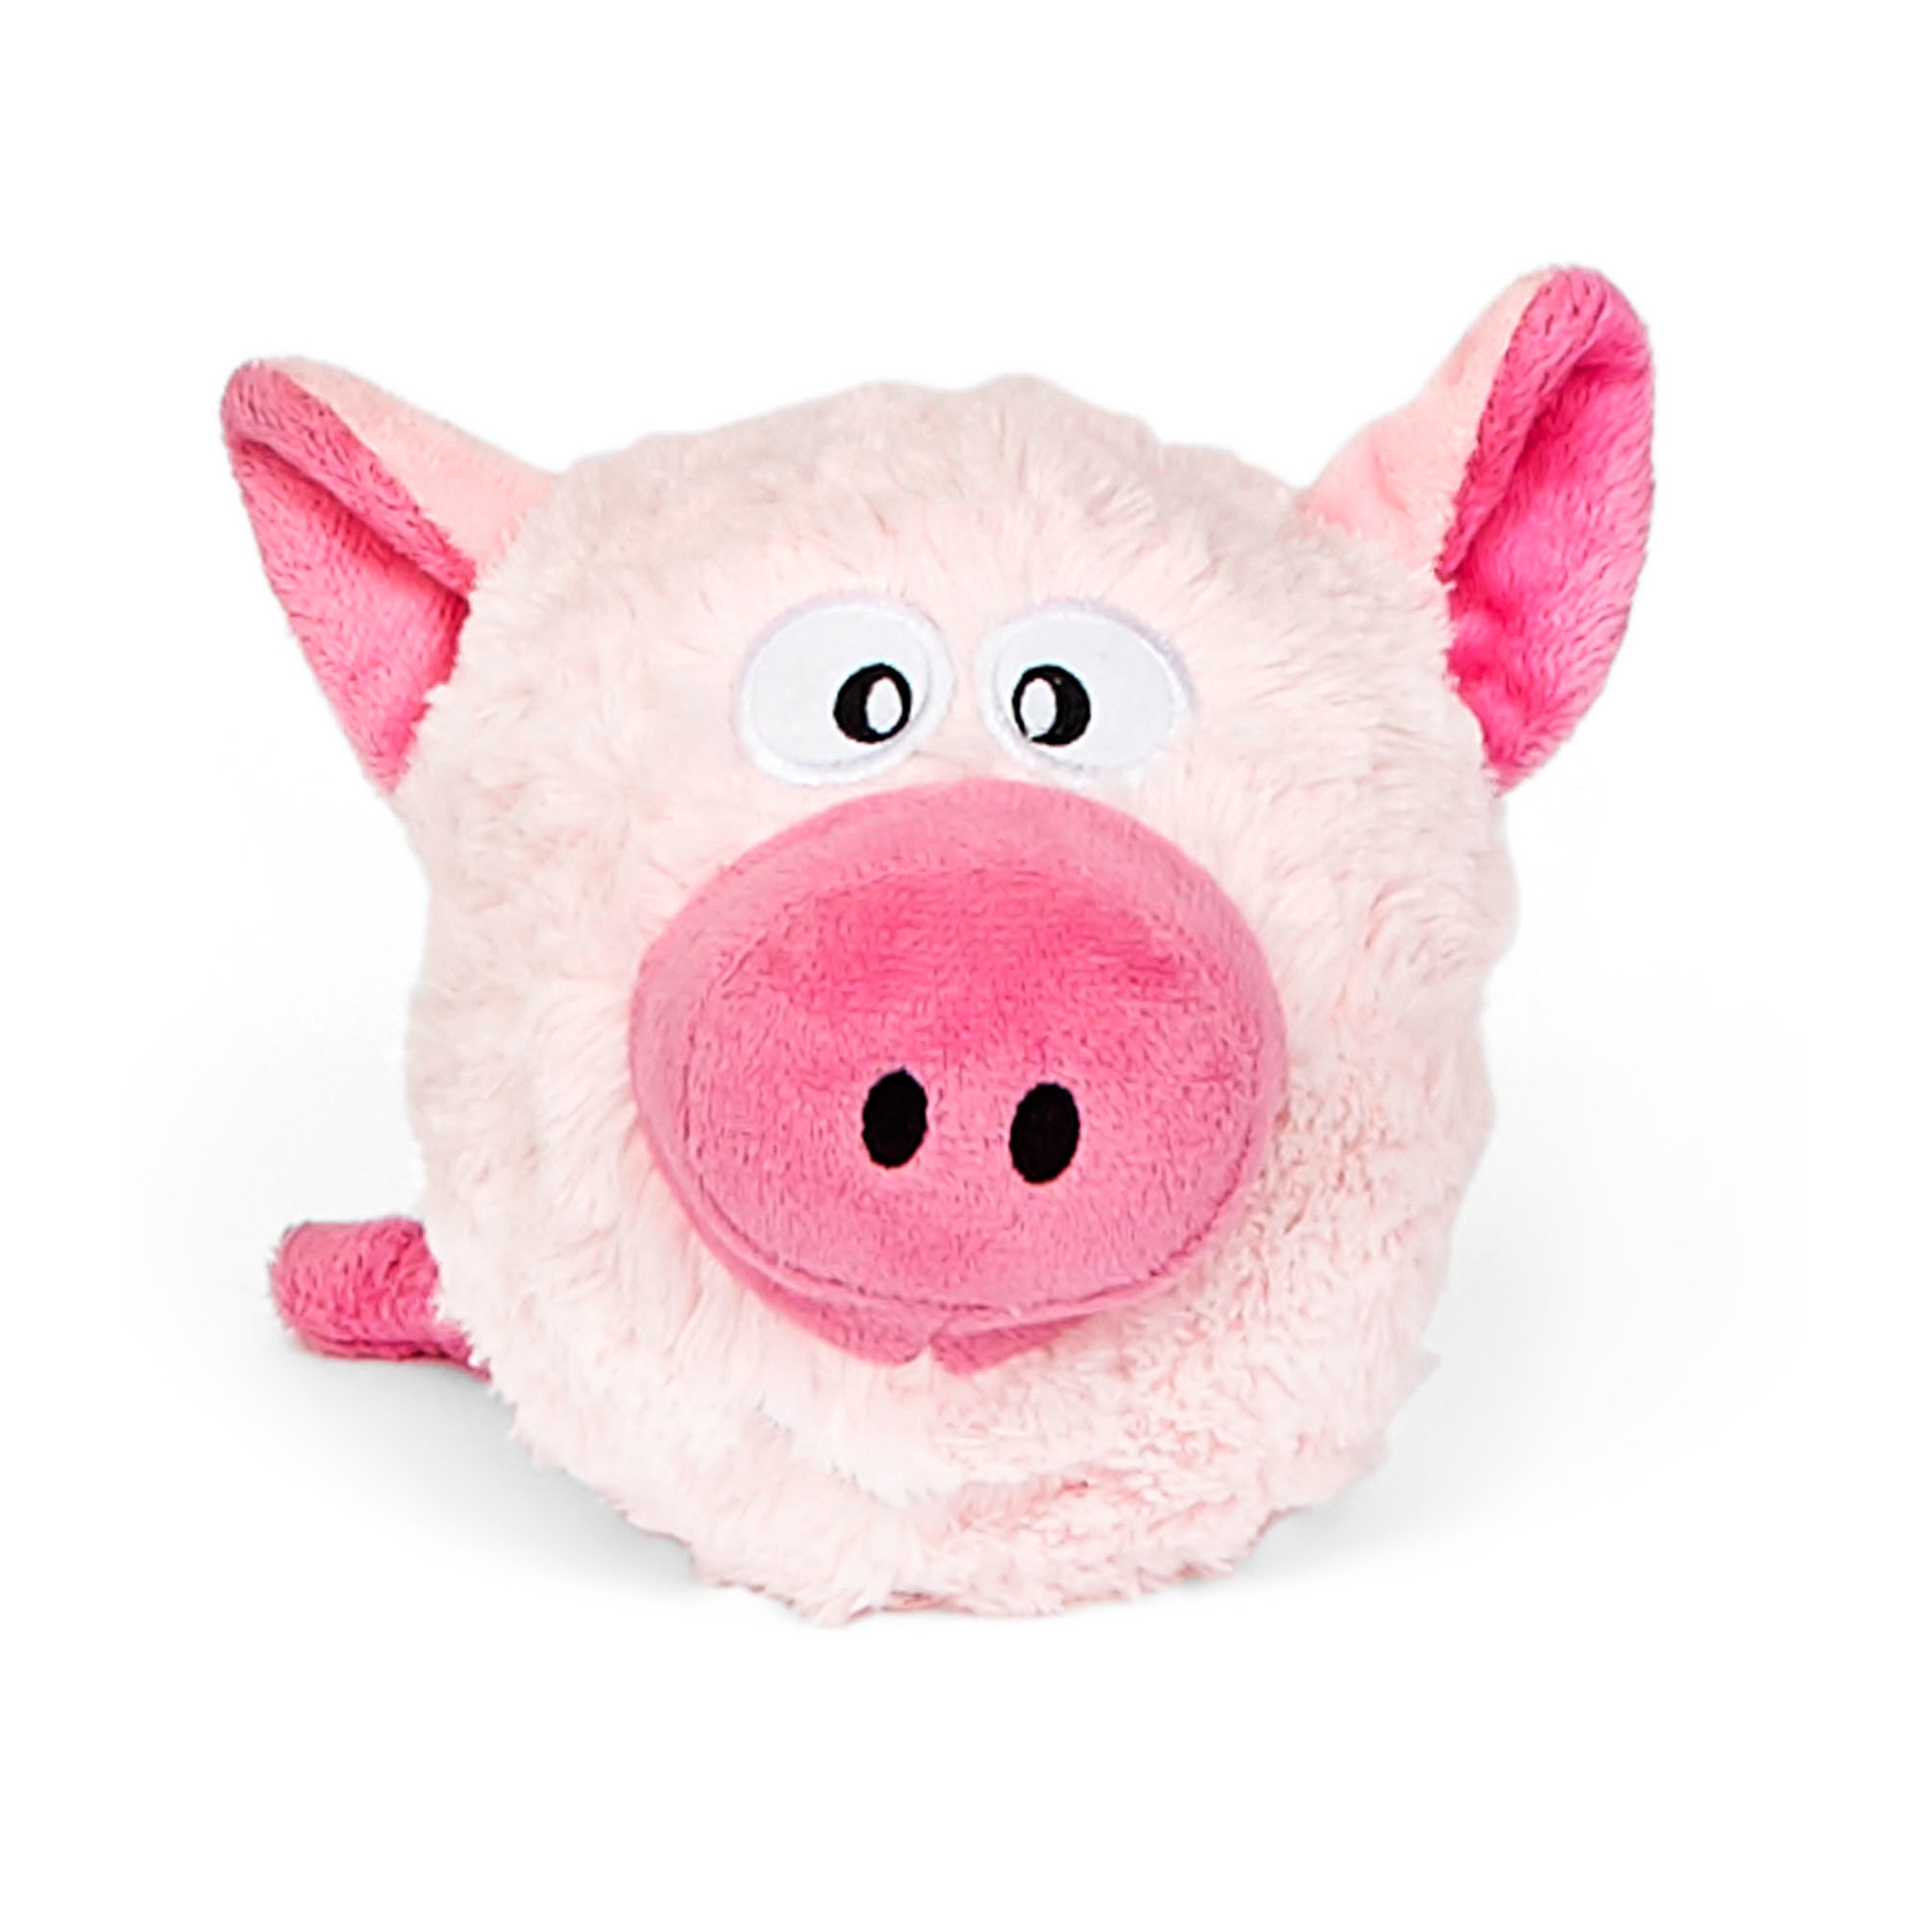 Bark Peg The Prized Pig Tough Dog Toy Pink Cute Dog Toys